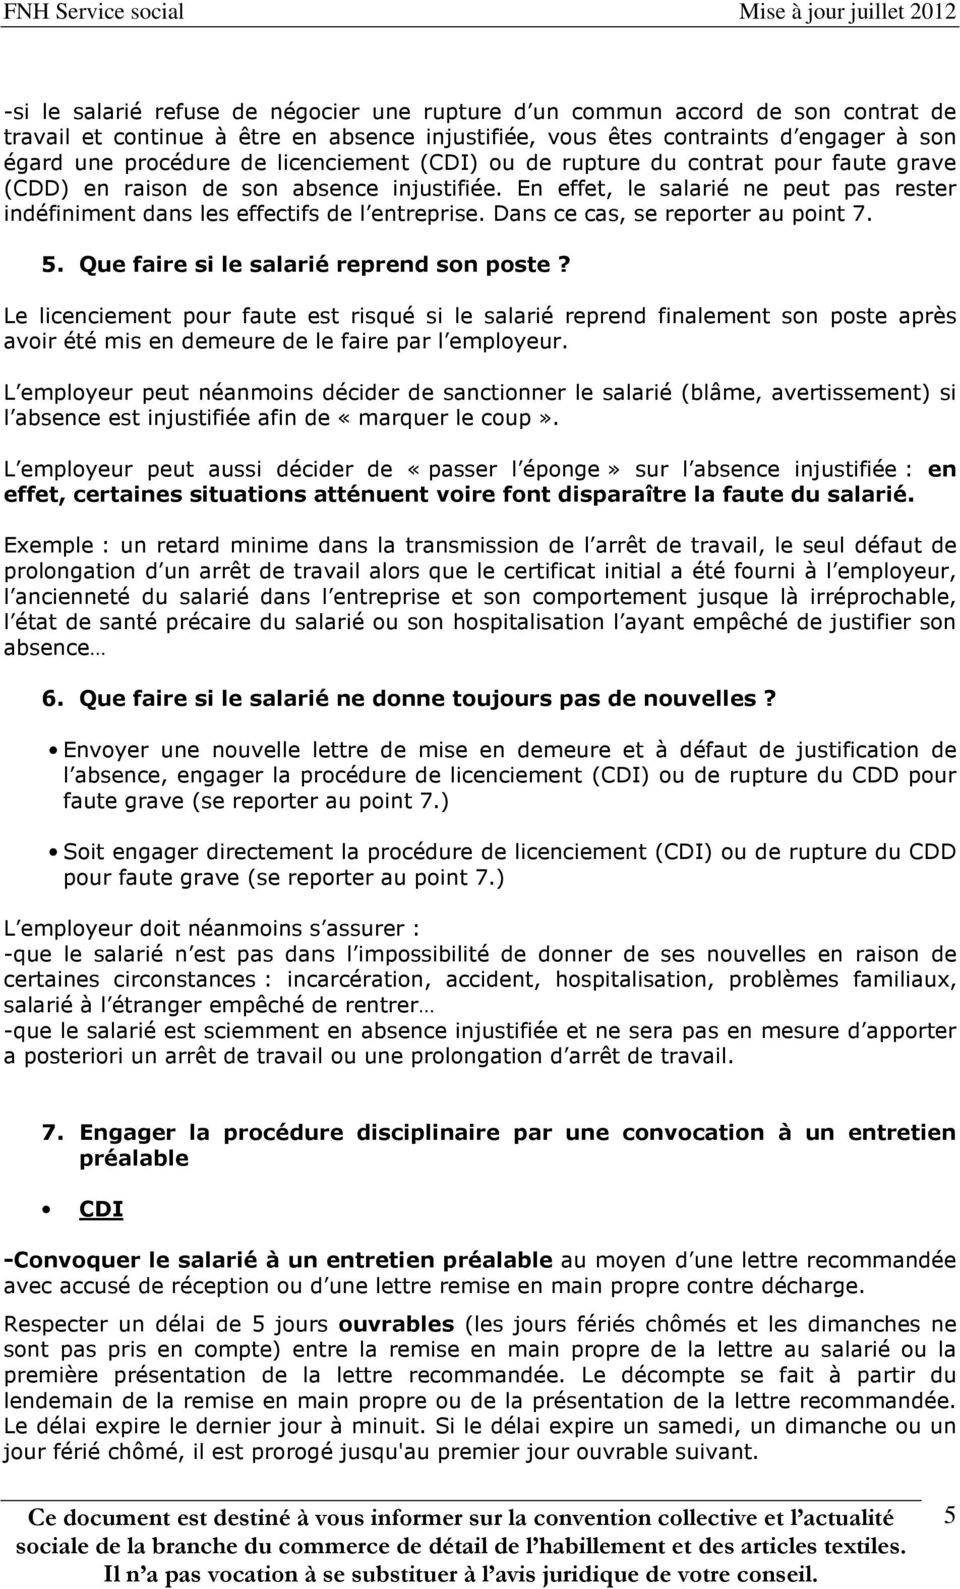 Comment Reagir Face A Une Absence Injustifiee Du Salarie Pdf